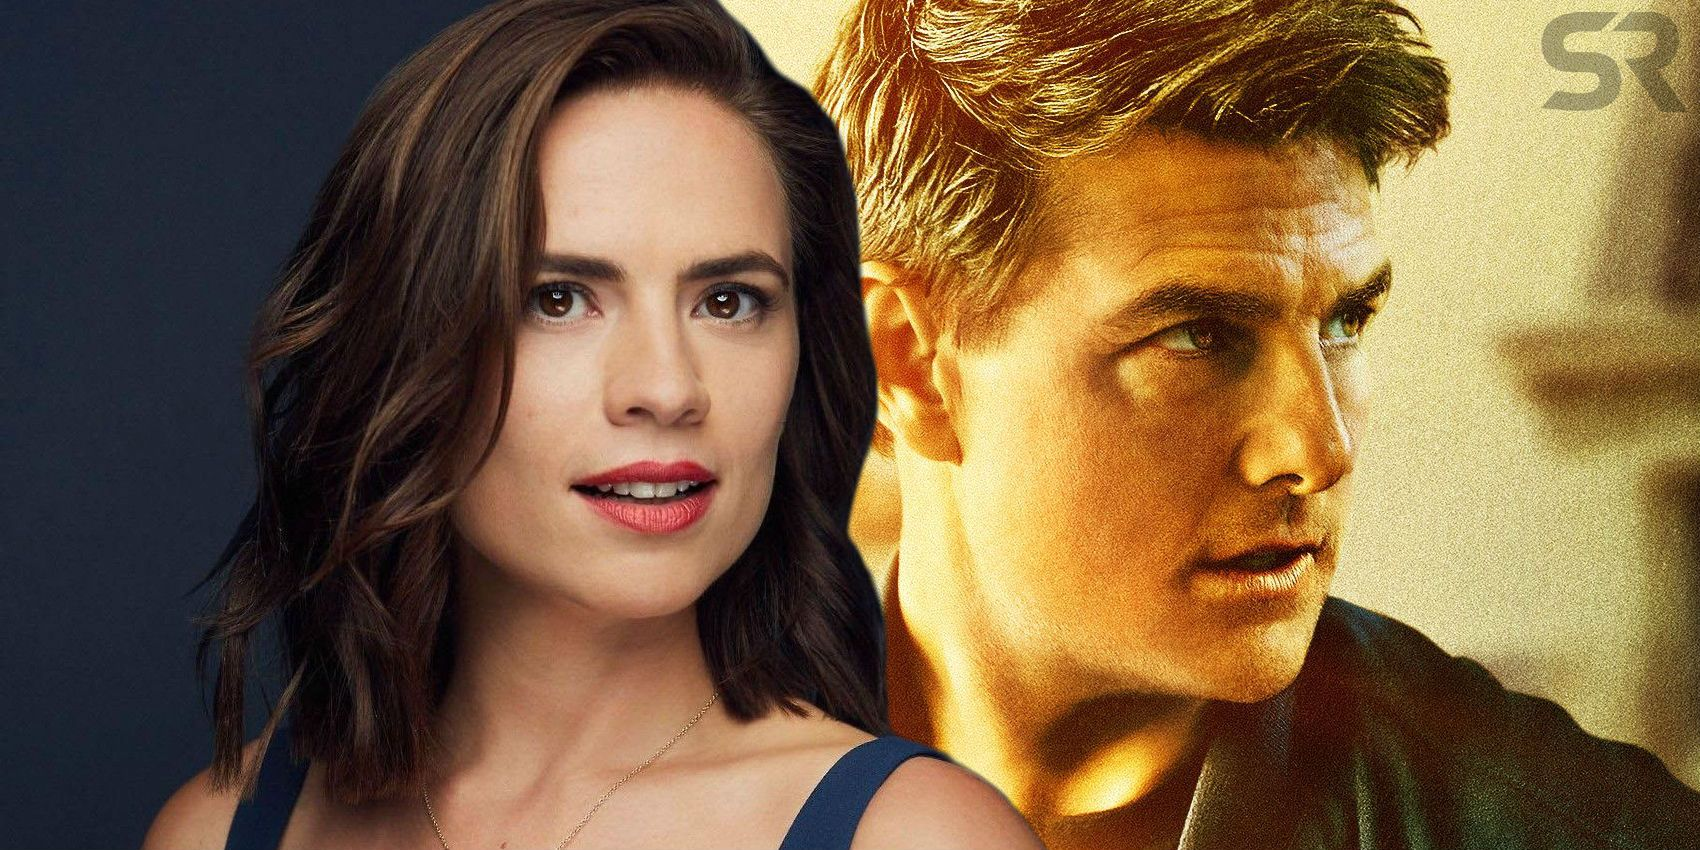 Mission: Impossible 7: Hayley Atwell Character Details Revealed